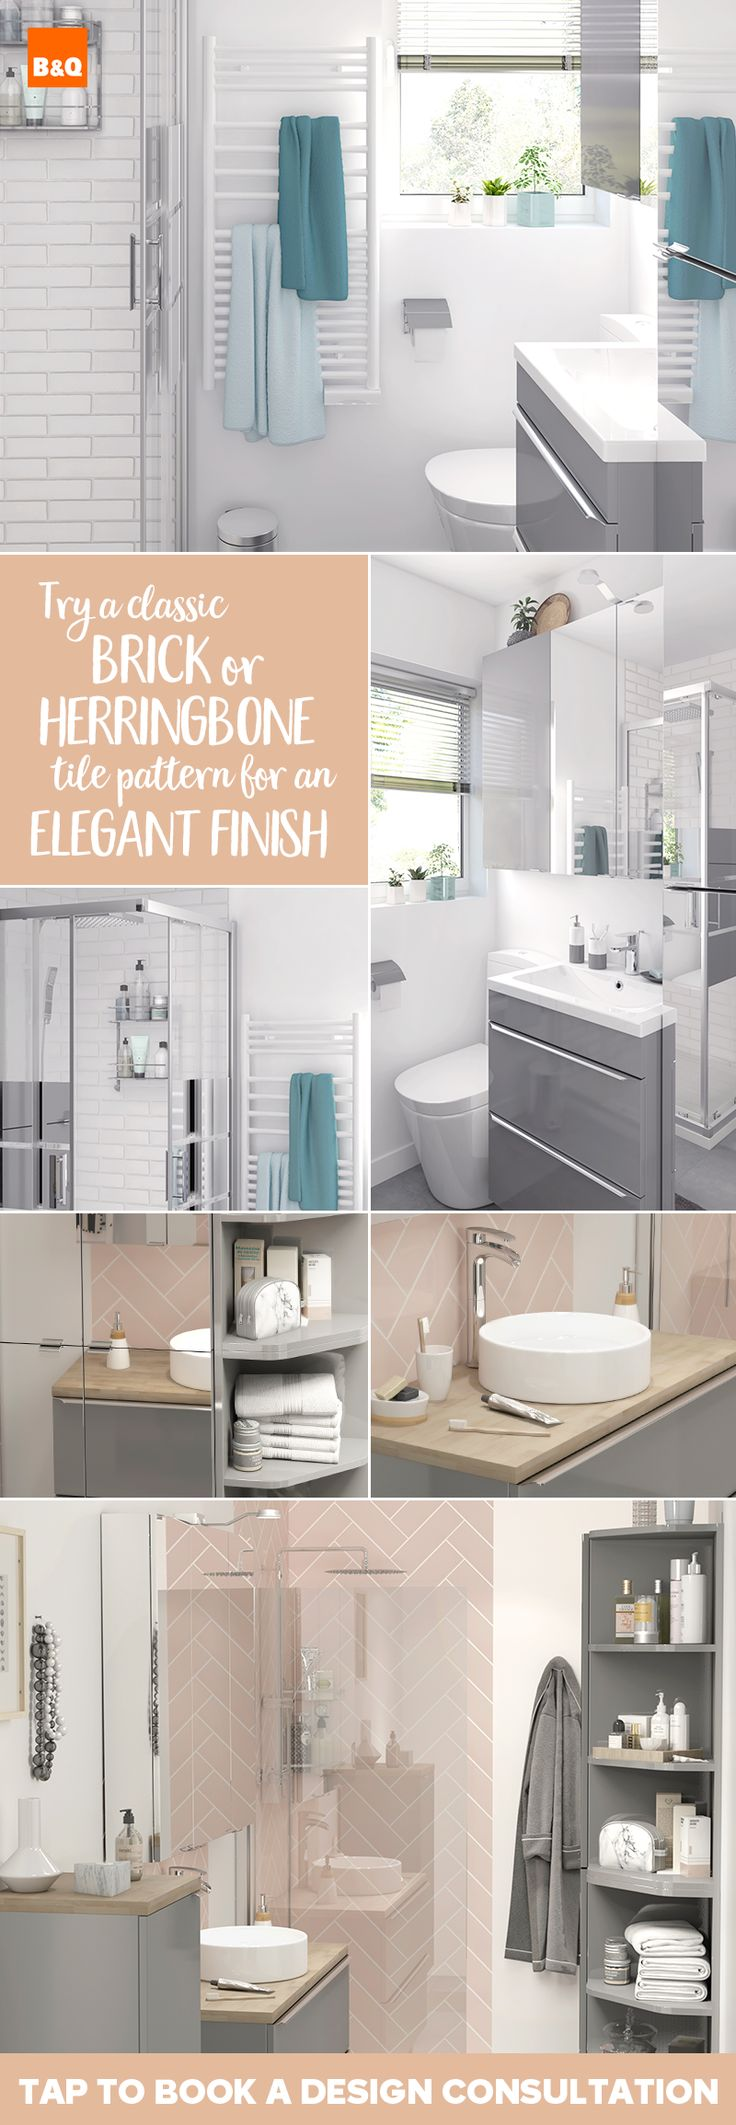 What tile pattern will you choose for your bathroom renovation? Will you  keep it classic with a brick pattern, or try fashionable herringbone?